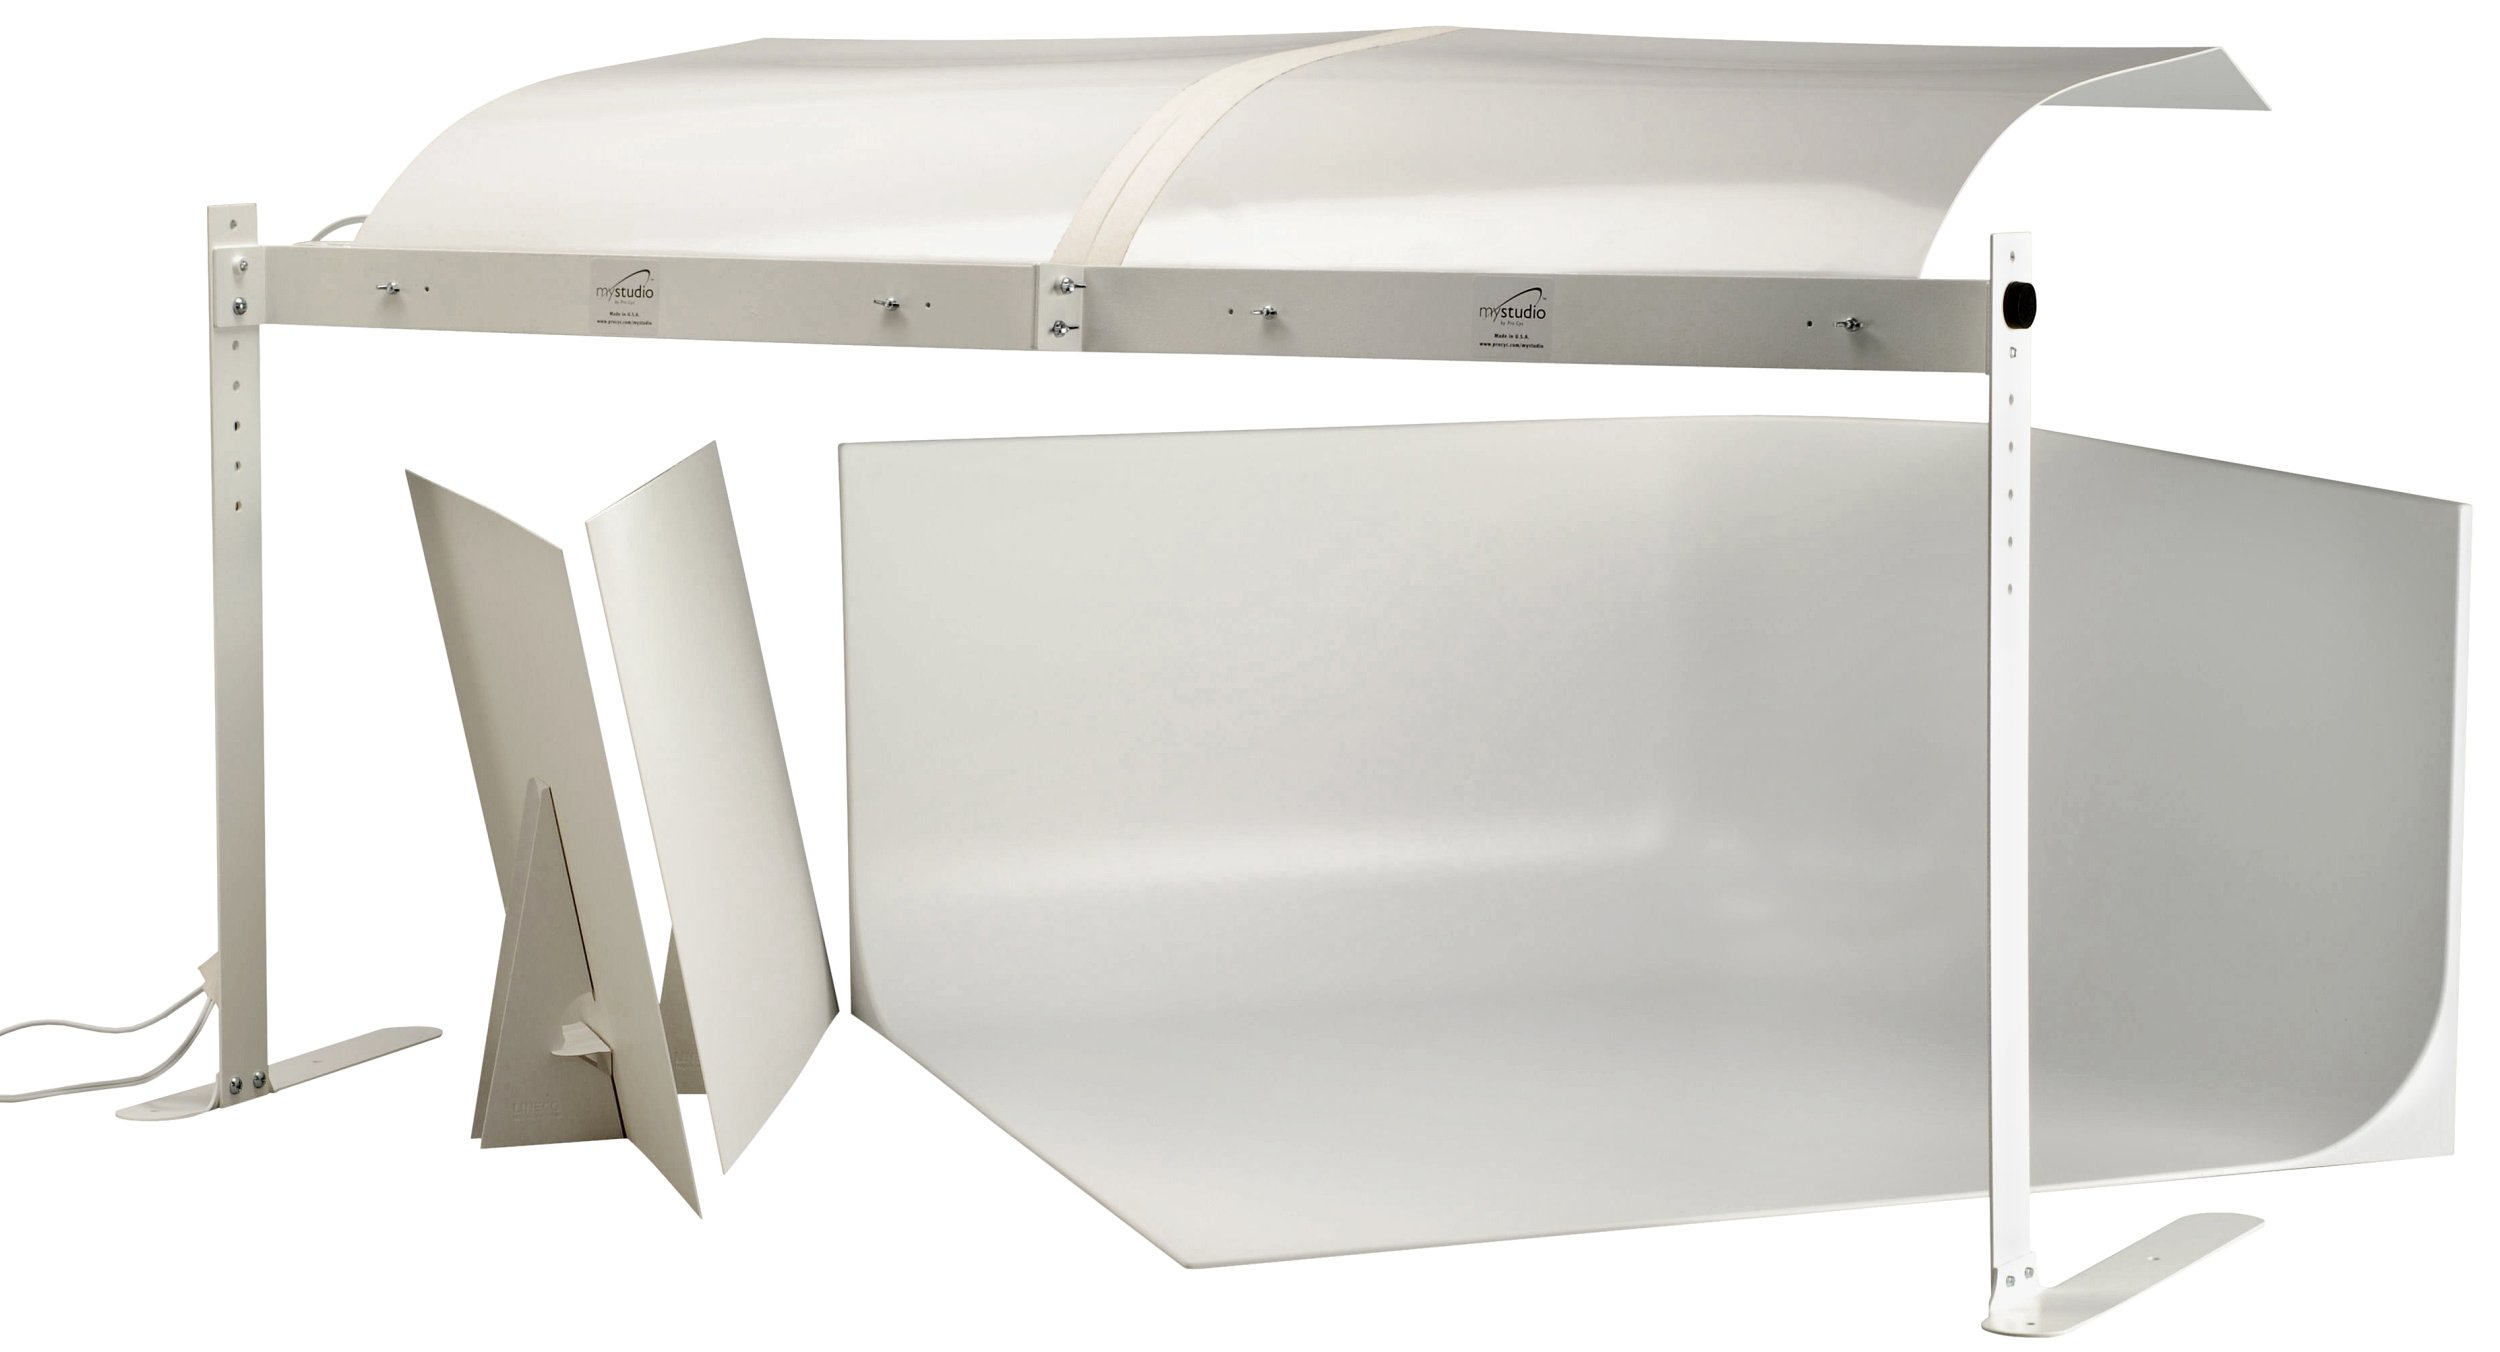 MyStudio MS32 Professional Table Top Photo Studio Lightbox Kit w/ 5000K Lighting for Product Photography, 32x32x16 inches